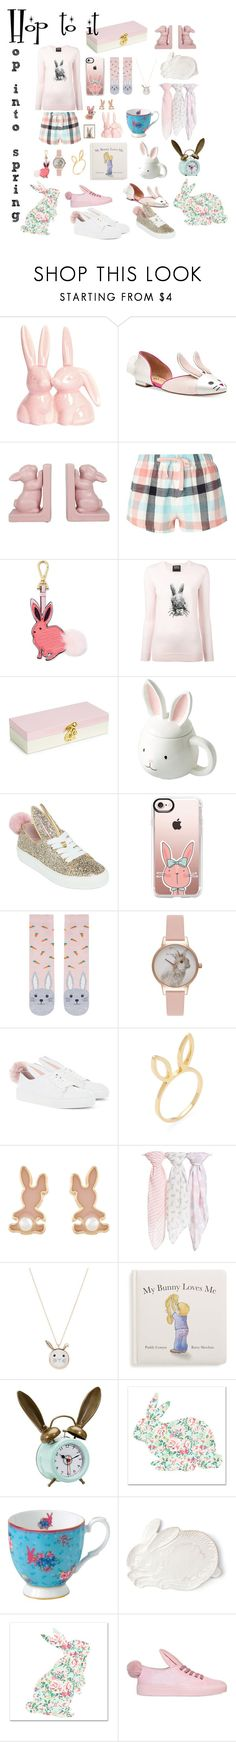 """""""Hop into Spring!"""" by krisannebaker on Polyvore featuring Dorothy Perkins, Draper James, Markus Lupfer, Celebrate Shop, Minna Parikka, Casetify, Accessorize, Olivia Burton, Jacquie Aiche and Nordstrom"""